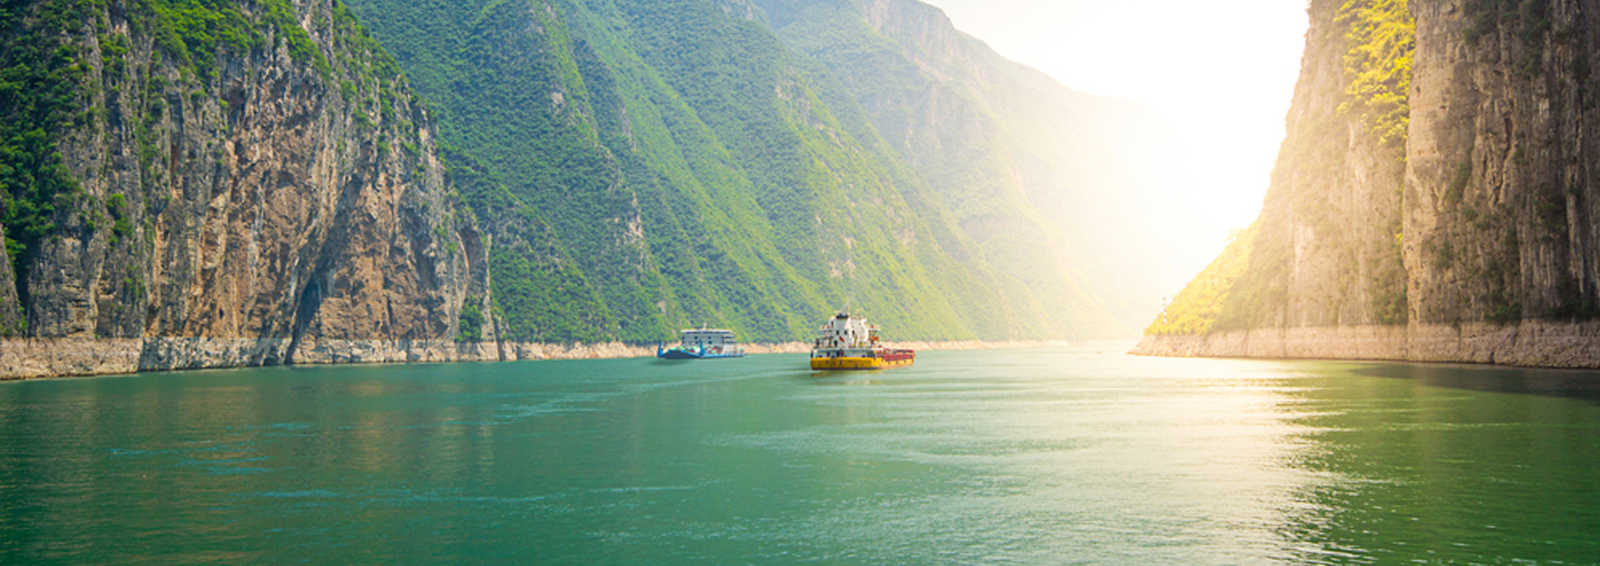 ACE Yangtze River Cruise